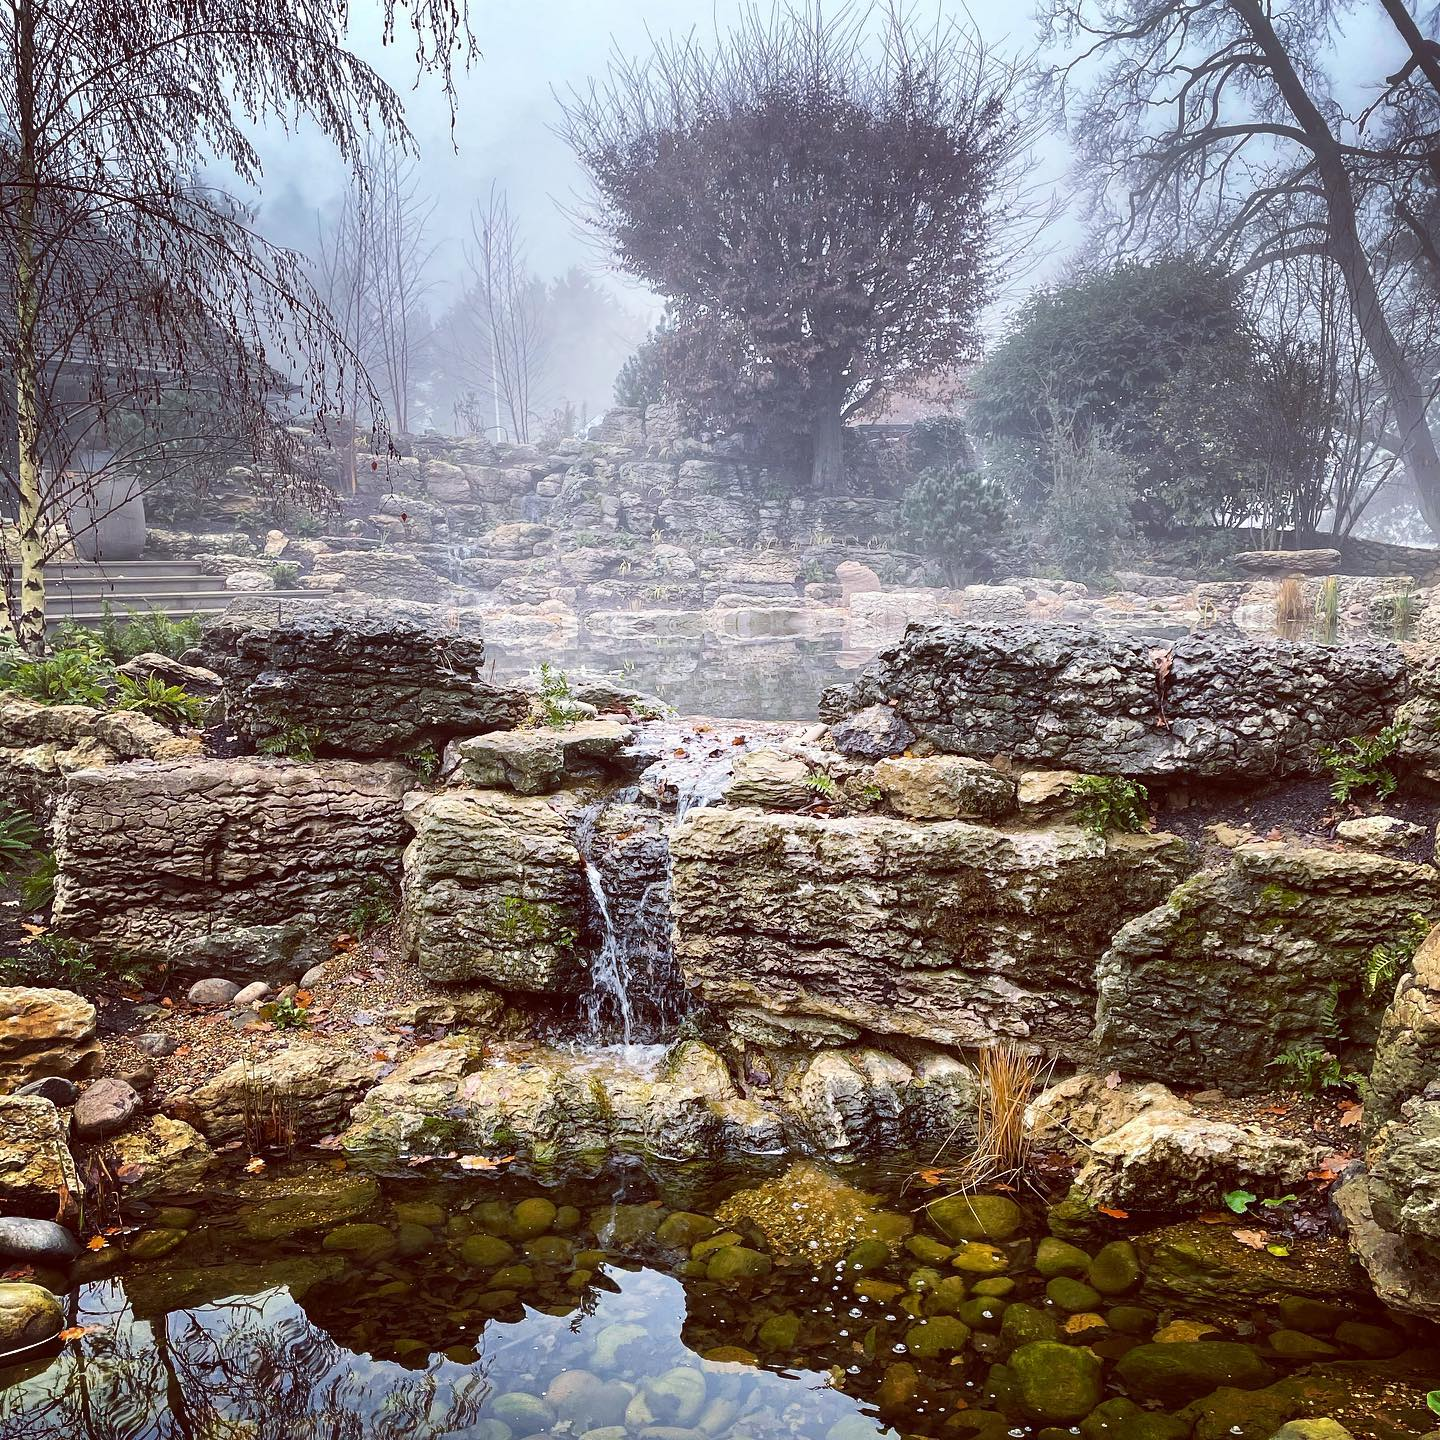 Beautiful atmospheric misty morning at our Surrey project... phase two is well underway with front garden and woodland garden taking shape! @belderboslandscapes @waterartisans @surmanweston